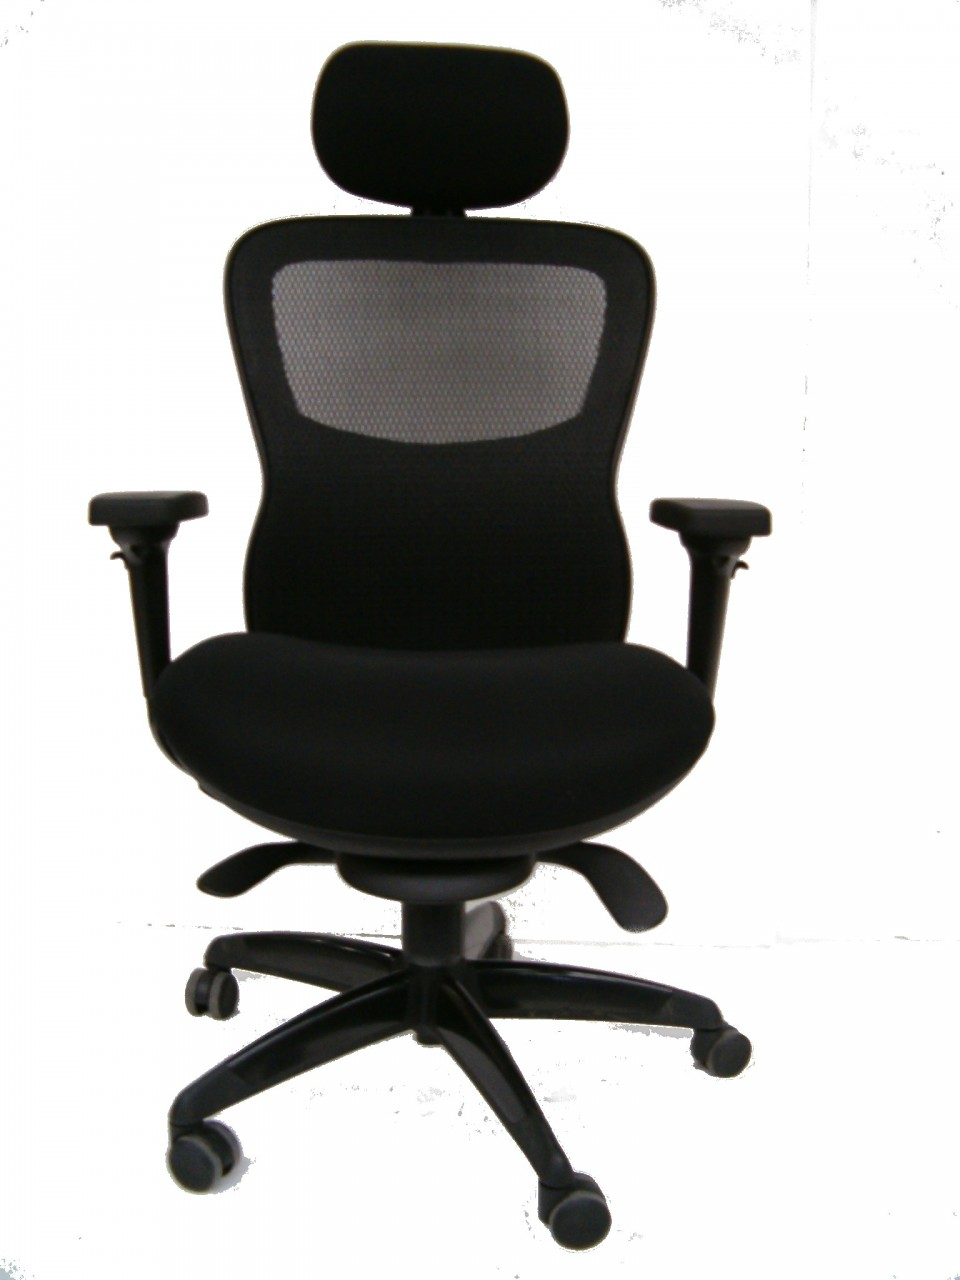 fauteuil de bureau ergonomique athos achat si ges ergonomiques 588 00. Black Bedroom Furniture Sets. Home Design Ideas